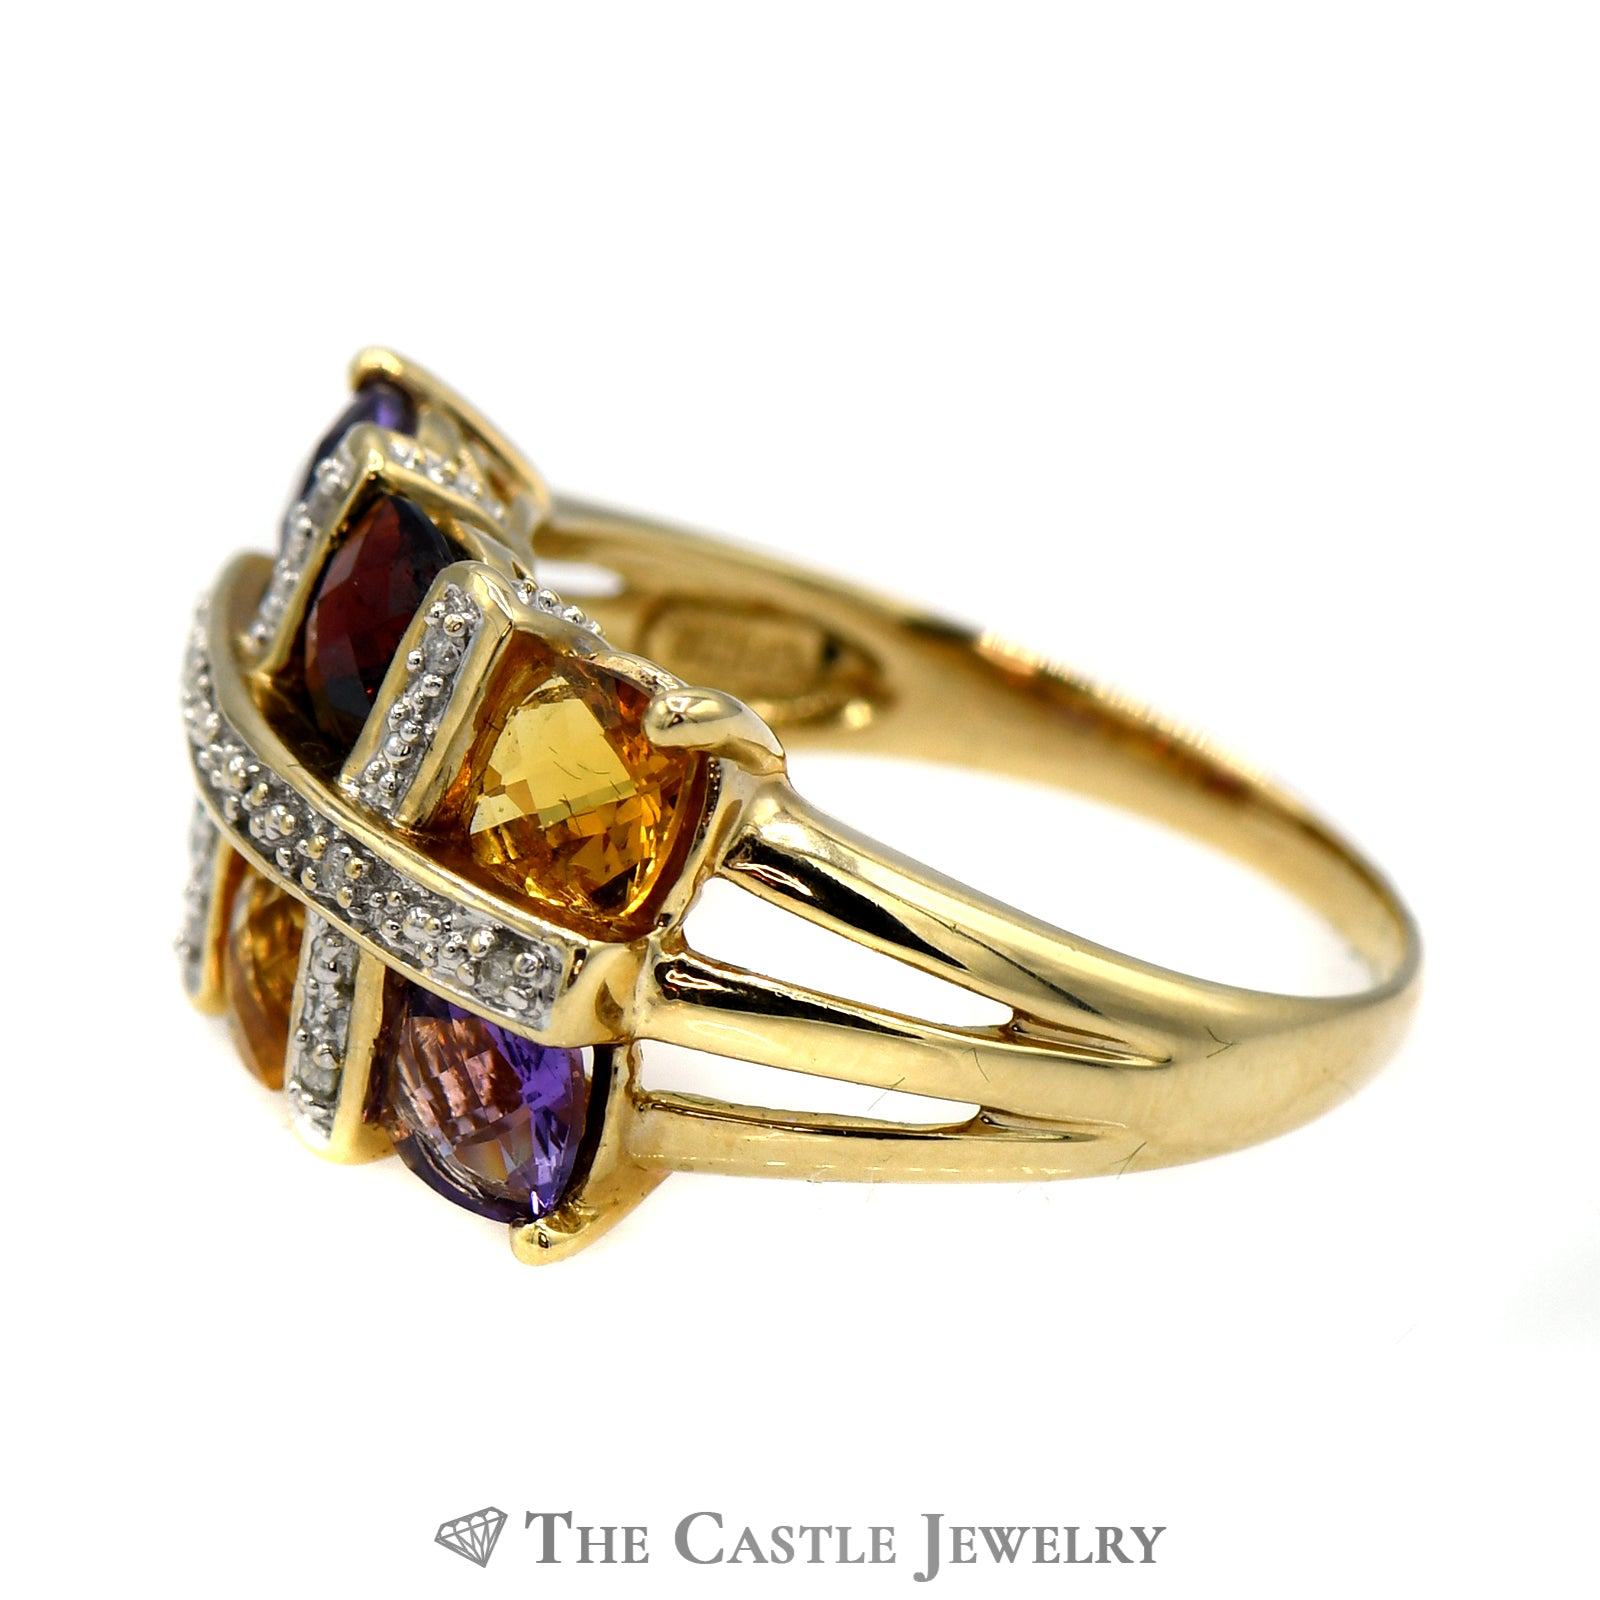 Multi Gemstone & .04cttw Diamond Ring with Split Shank Mount in 14k Yellow Gold-2